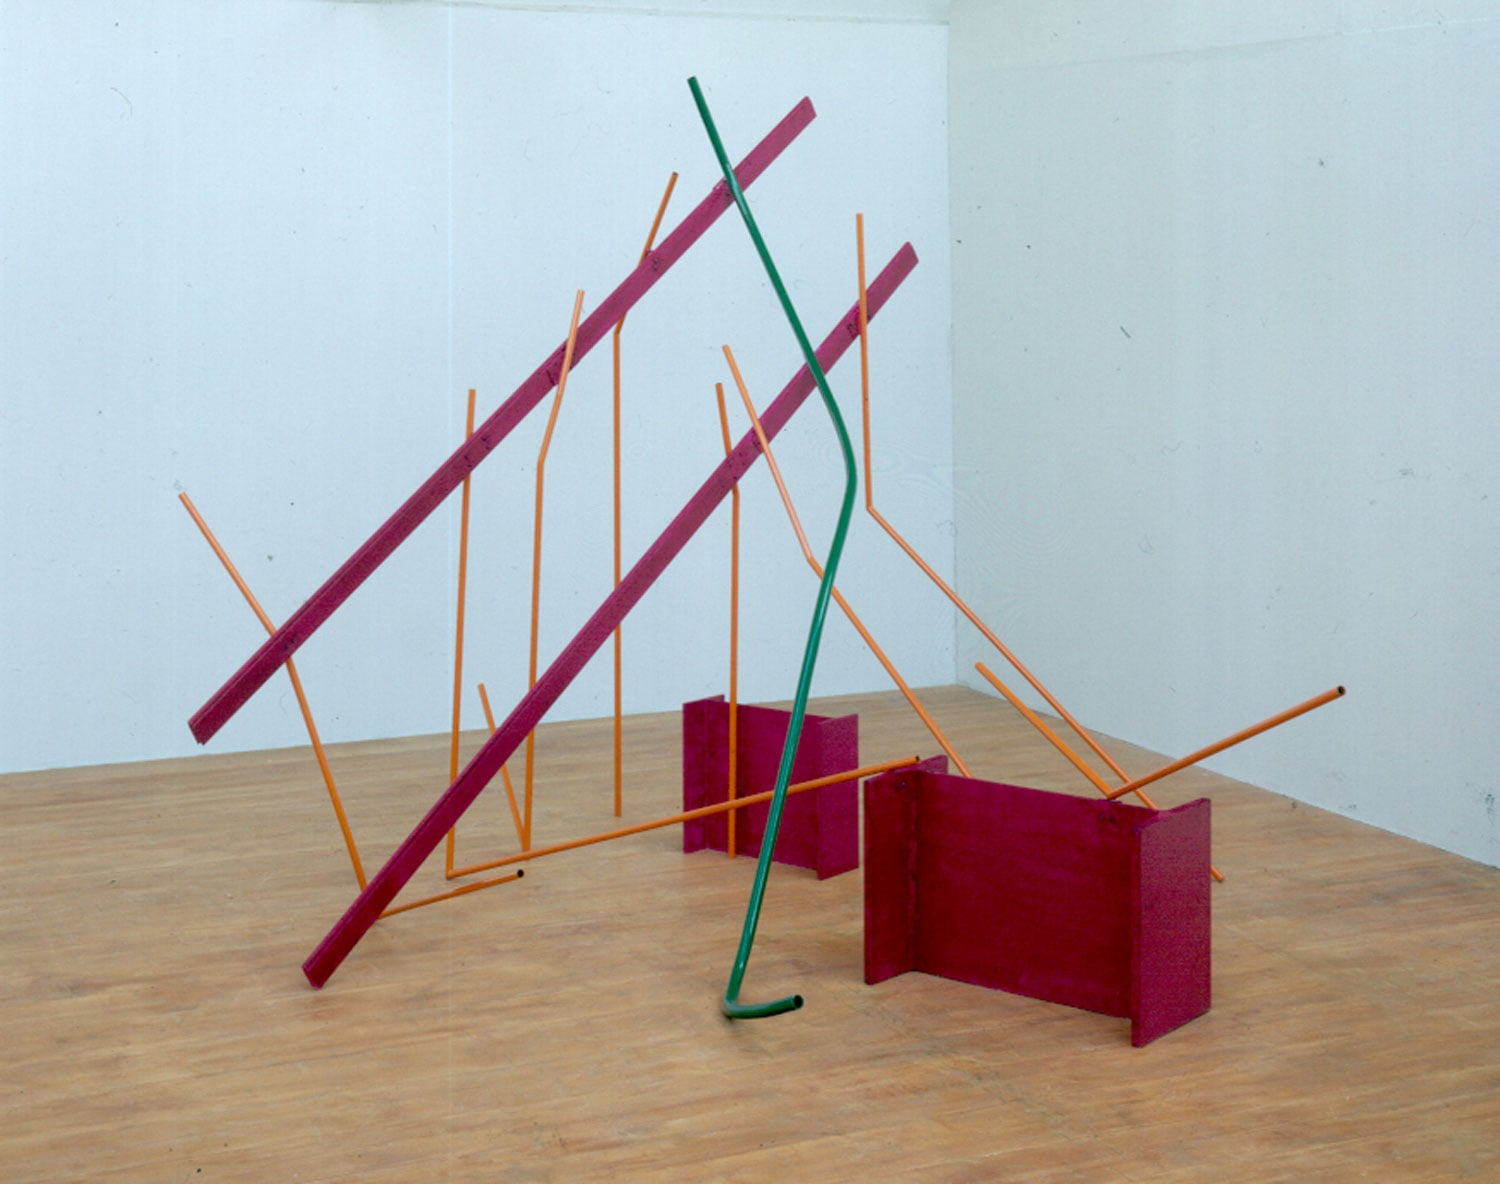 Anthony Caro, Month of May, 1963